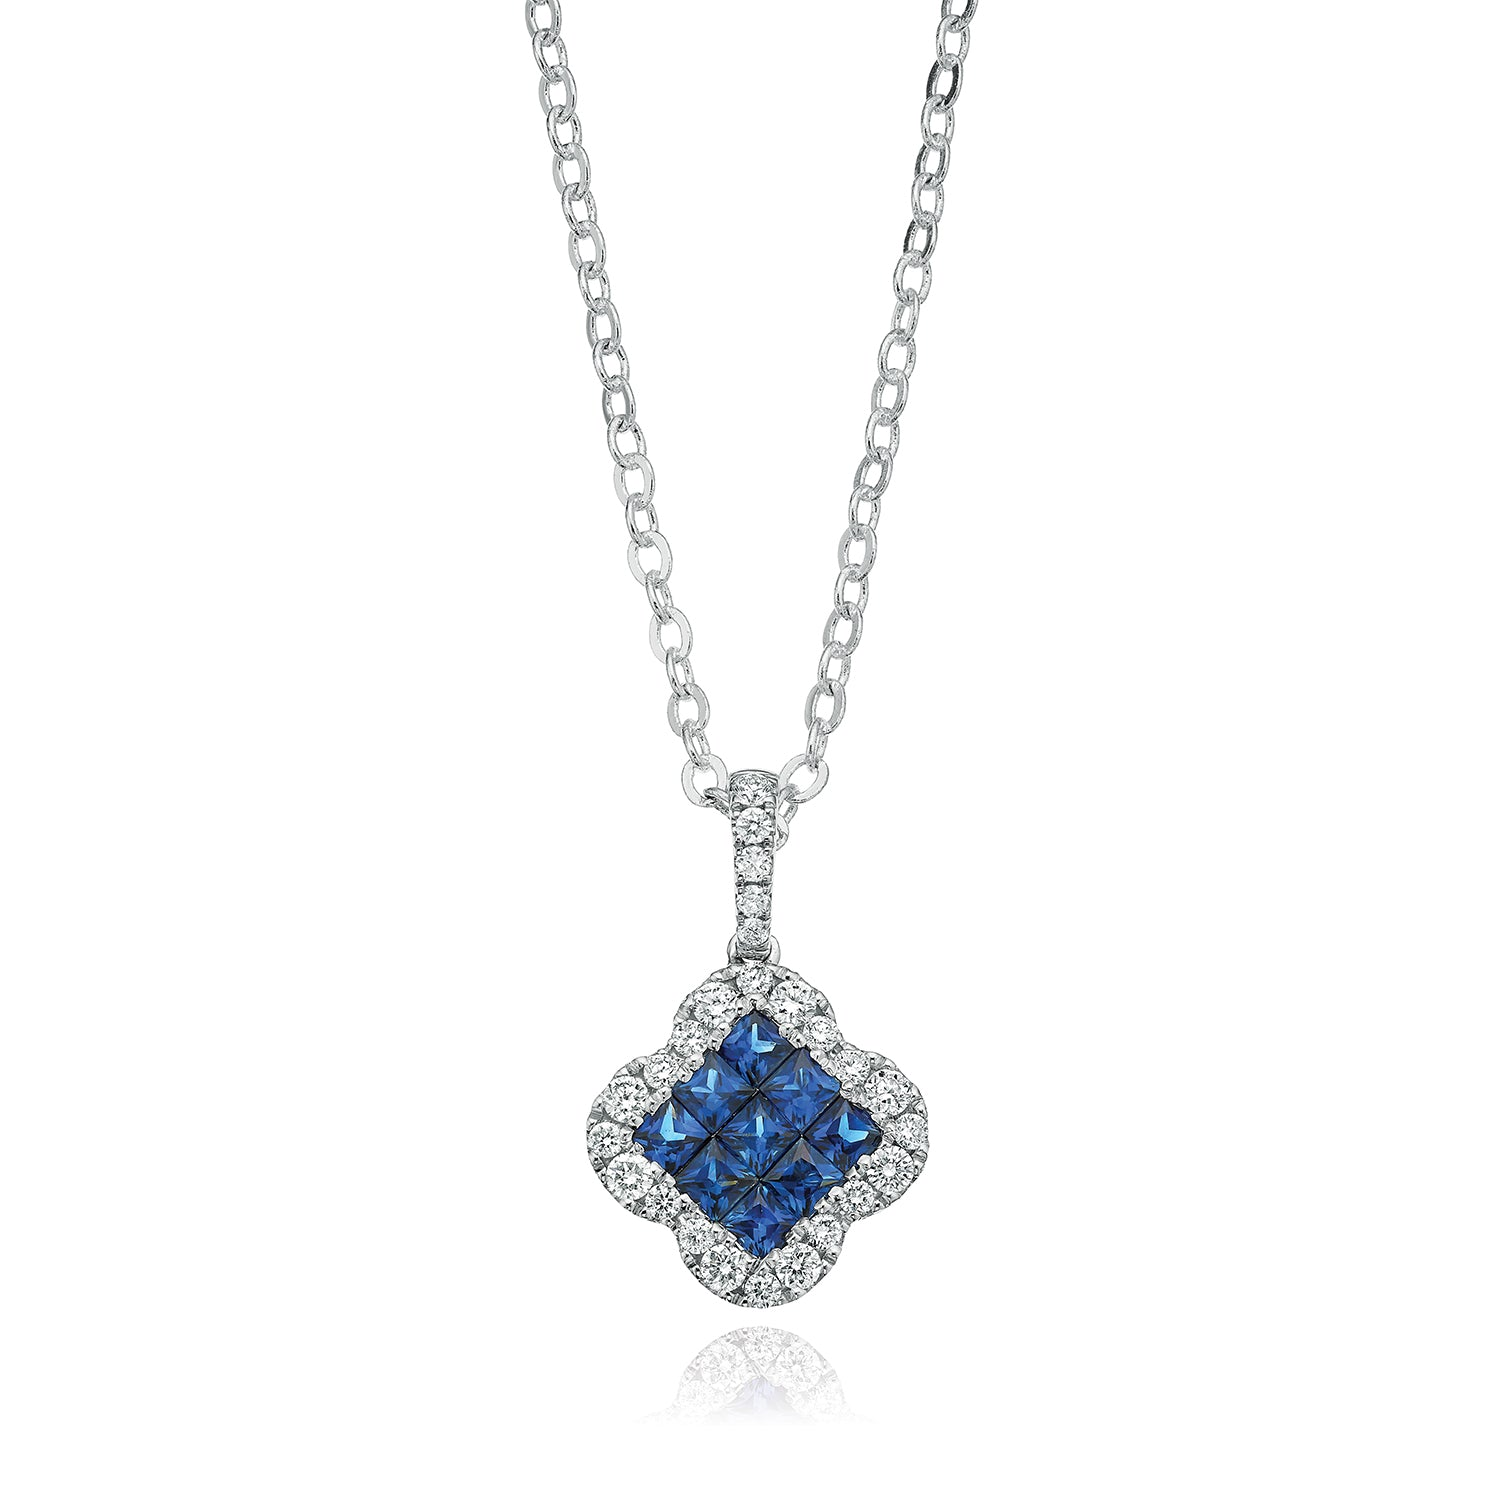 9ct White Gold Princess Cut Sapphire with 1/4 CARAT tw of Diamond Pendant